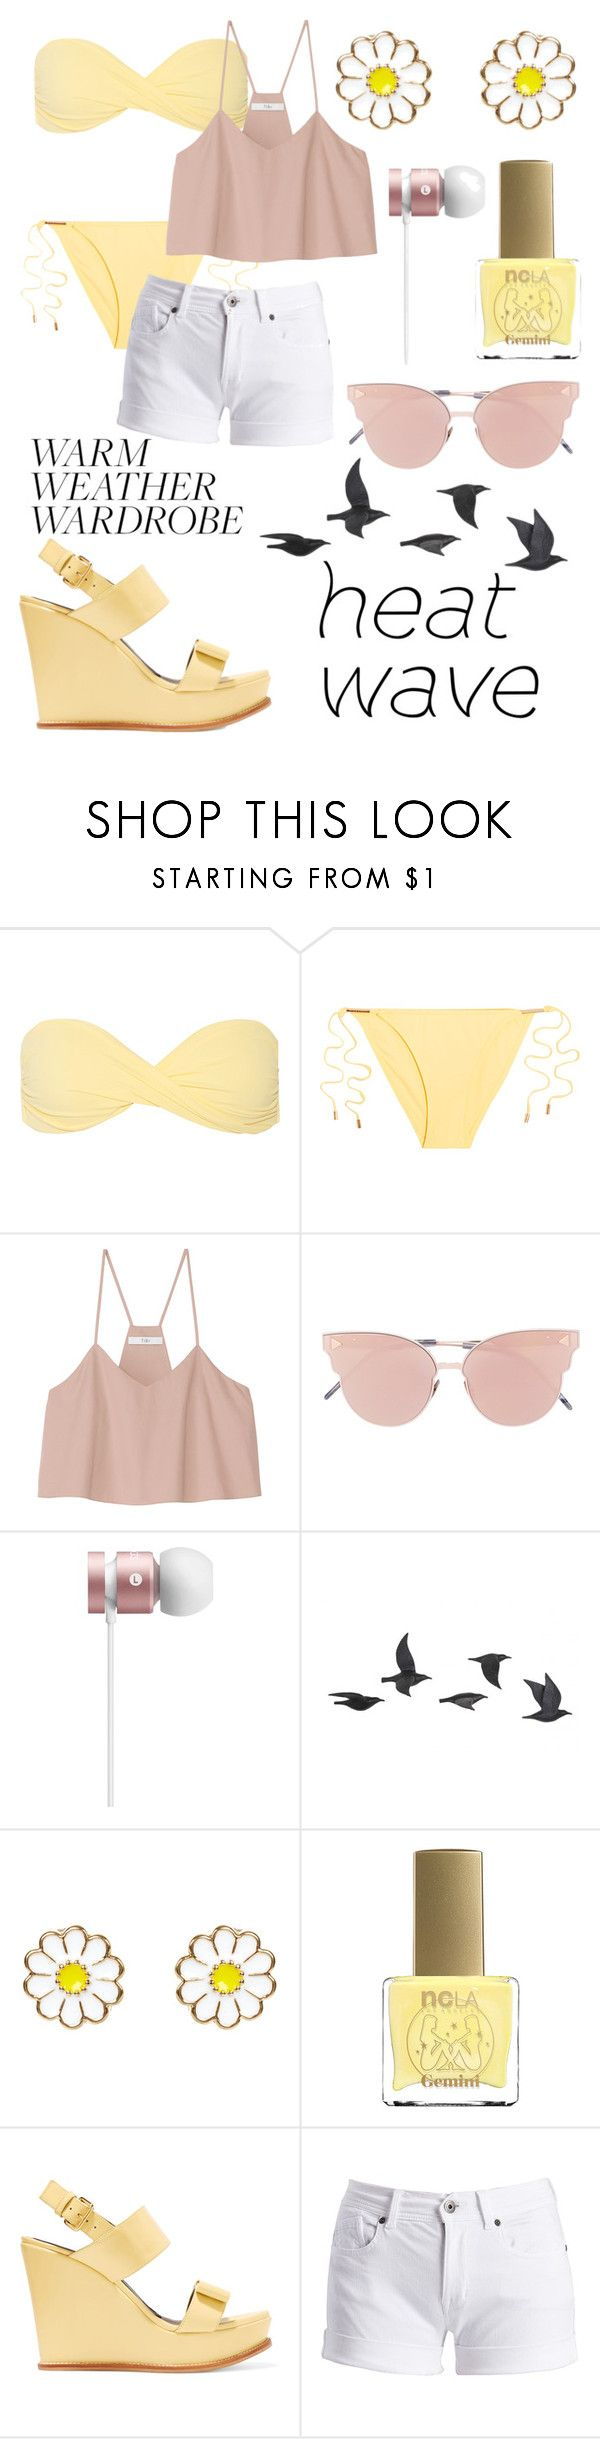 """Untitled #58"" by avastegall ❤ liked on Polyvore featuring Melissa Odabash, TIBI, So.Ya, Jayson Home, Monsoon, ncLA, Marni and Barbour International"